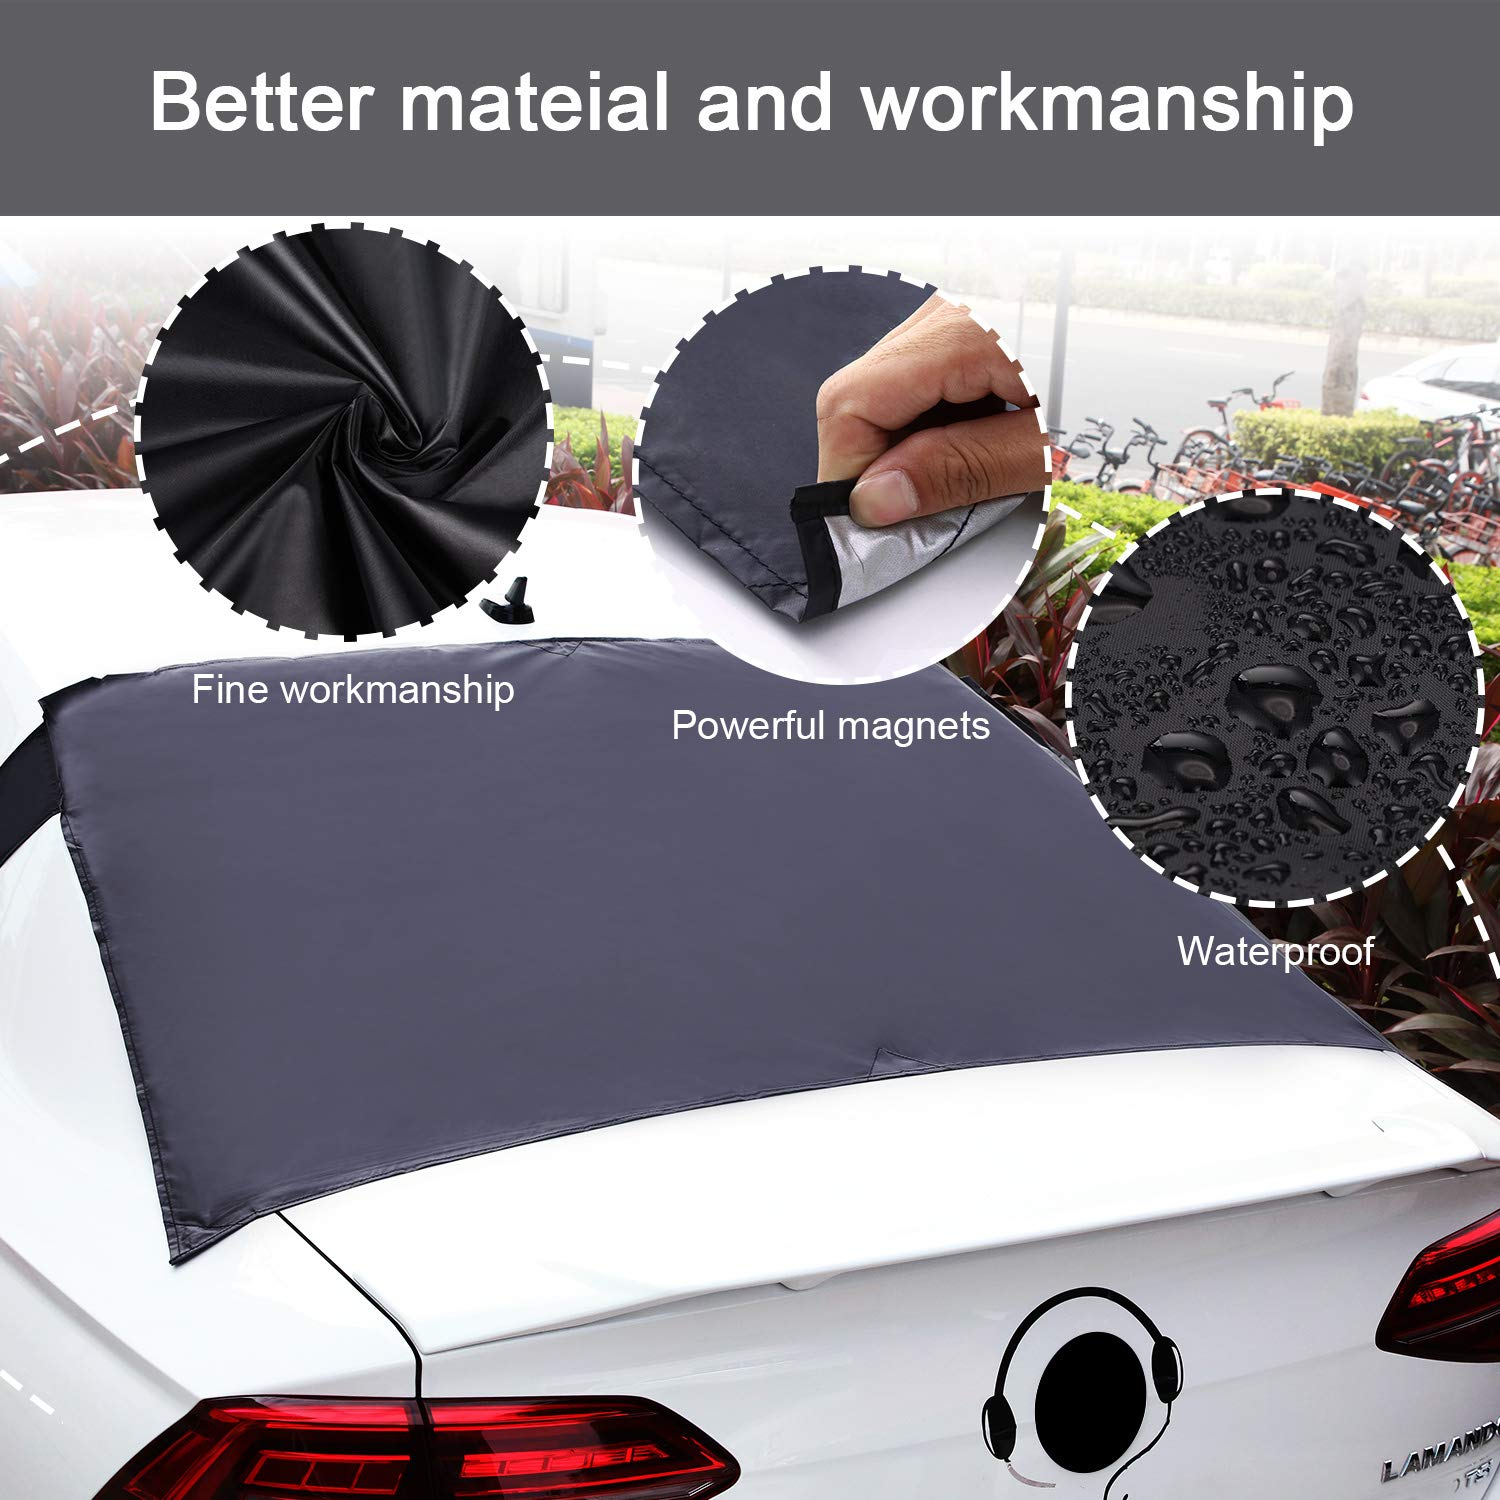 Van SUV Truck Rear Windshield Snow Cover 57.1 x 35.4 Inch Universal Ice Snow Frost Dust Car Cover Magnetic Windshield Cover Sun Shade Protector Fits Most Car